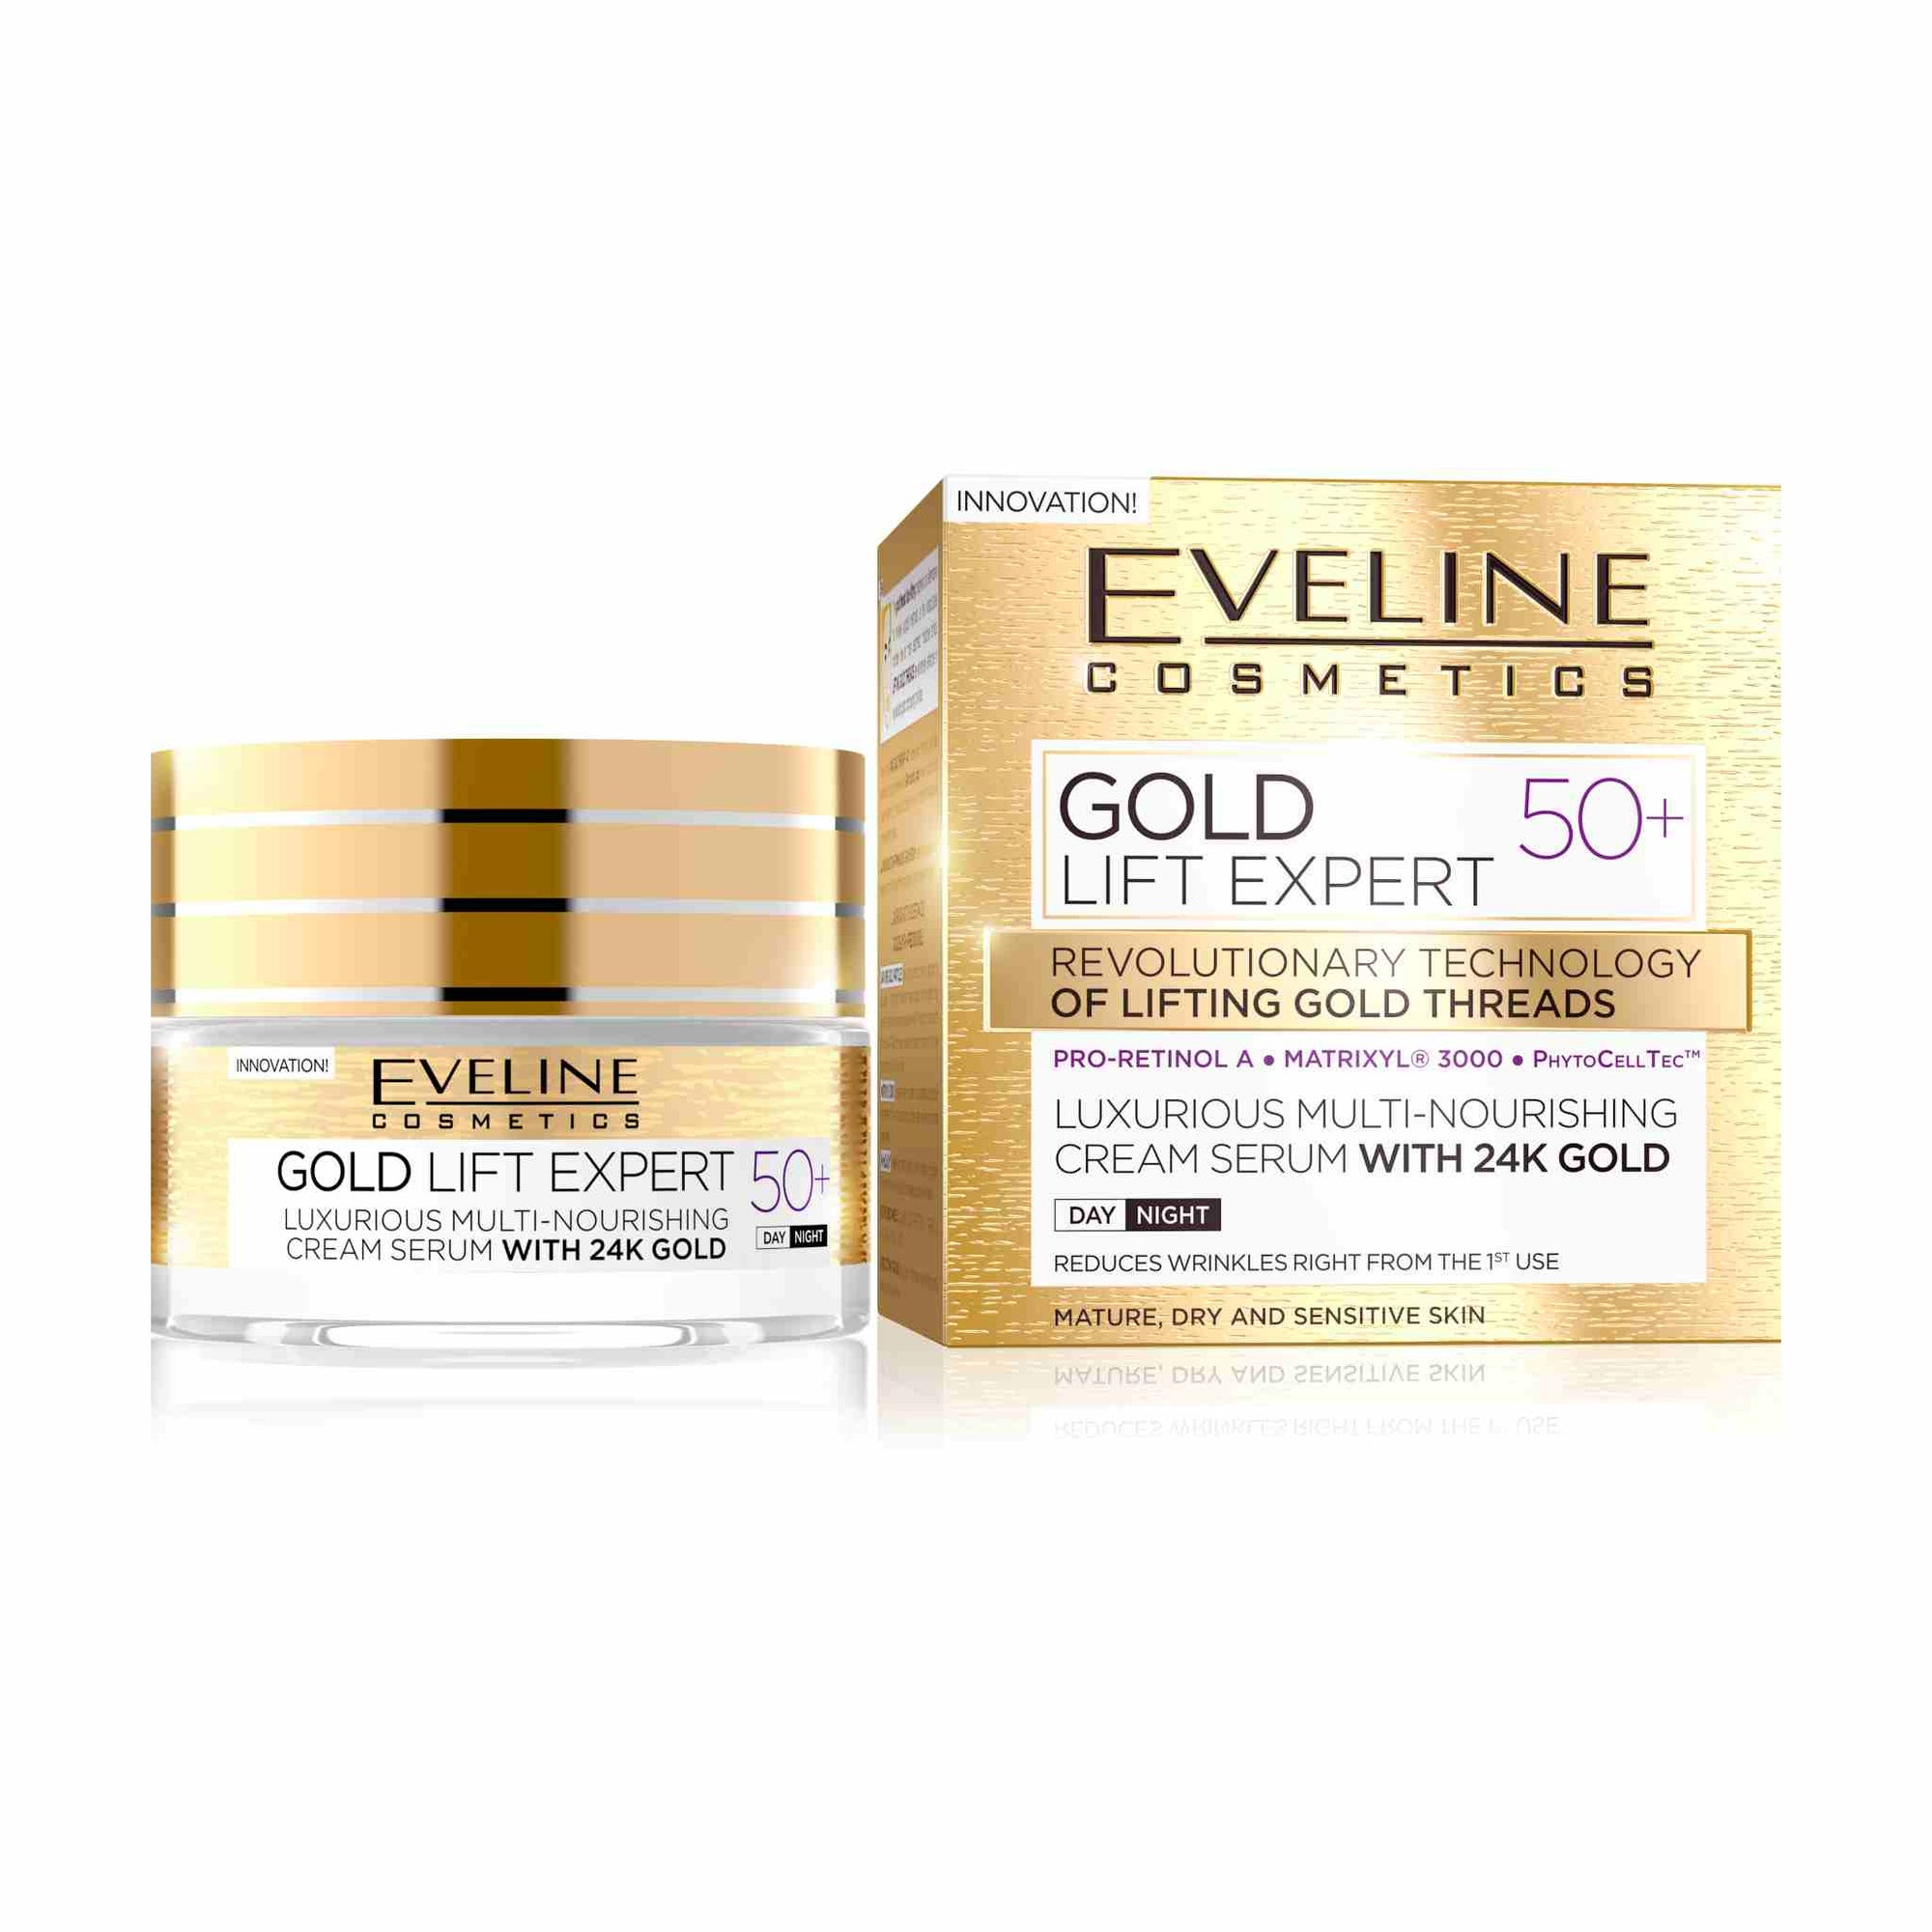 Gold Lift Expert Luxurious Multi-Nourishing Cream Serum with 24k Gold 50+